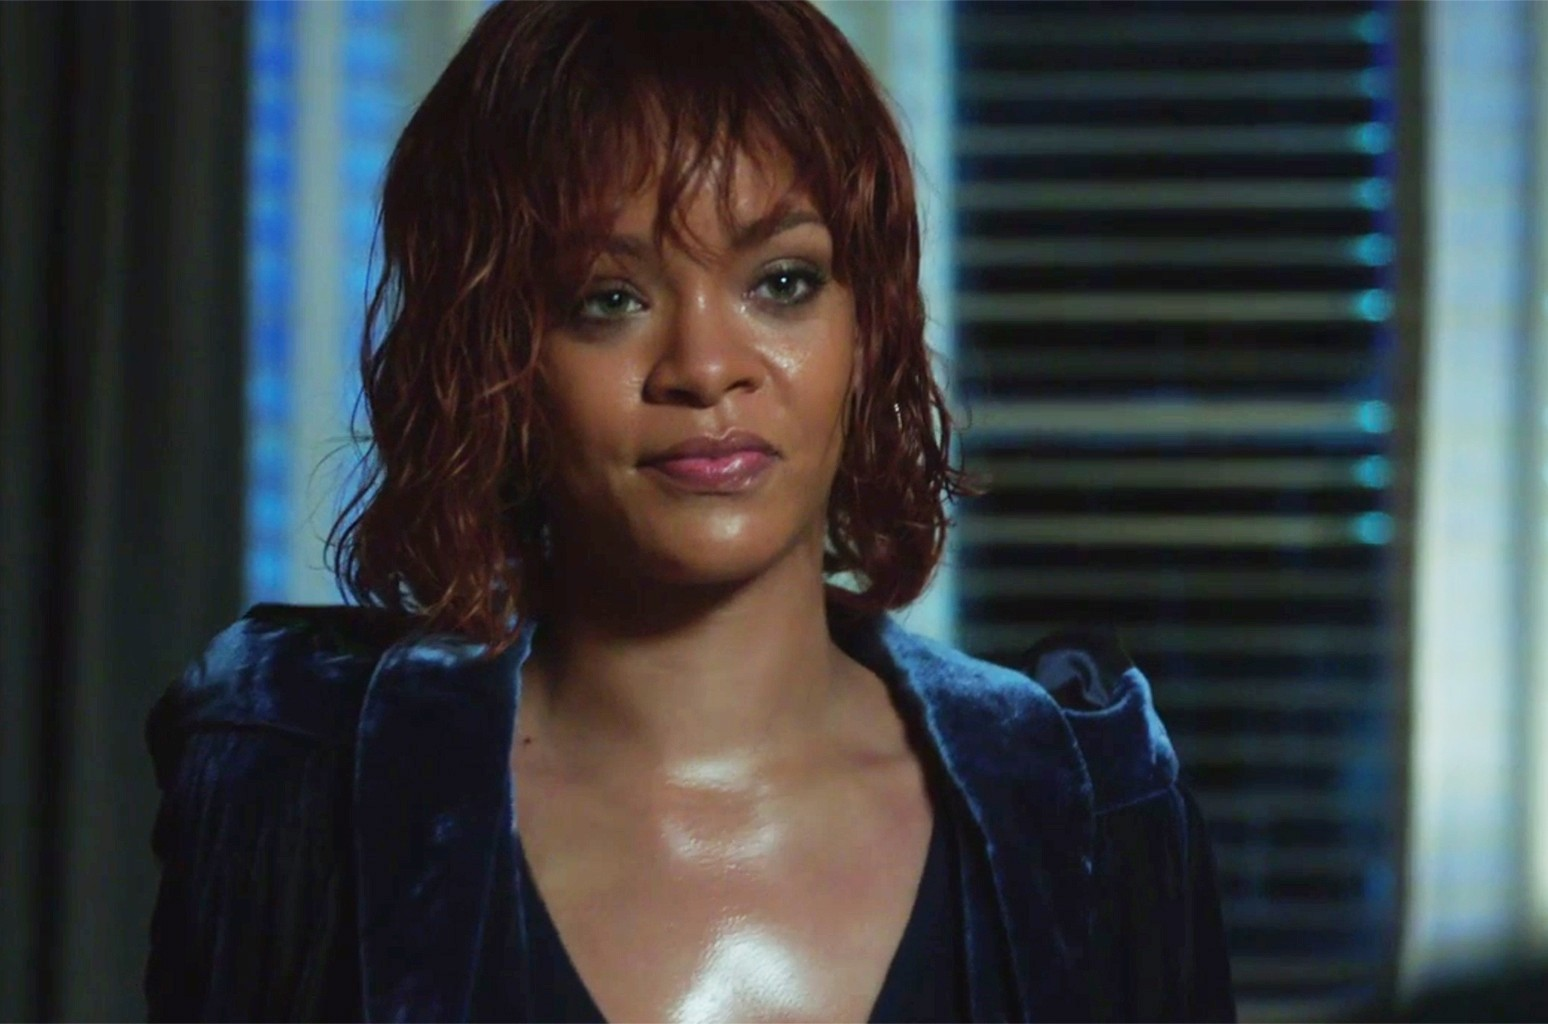 Rihanna in the trailer for the new season of Bates Motel